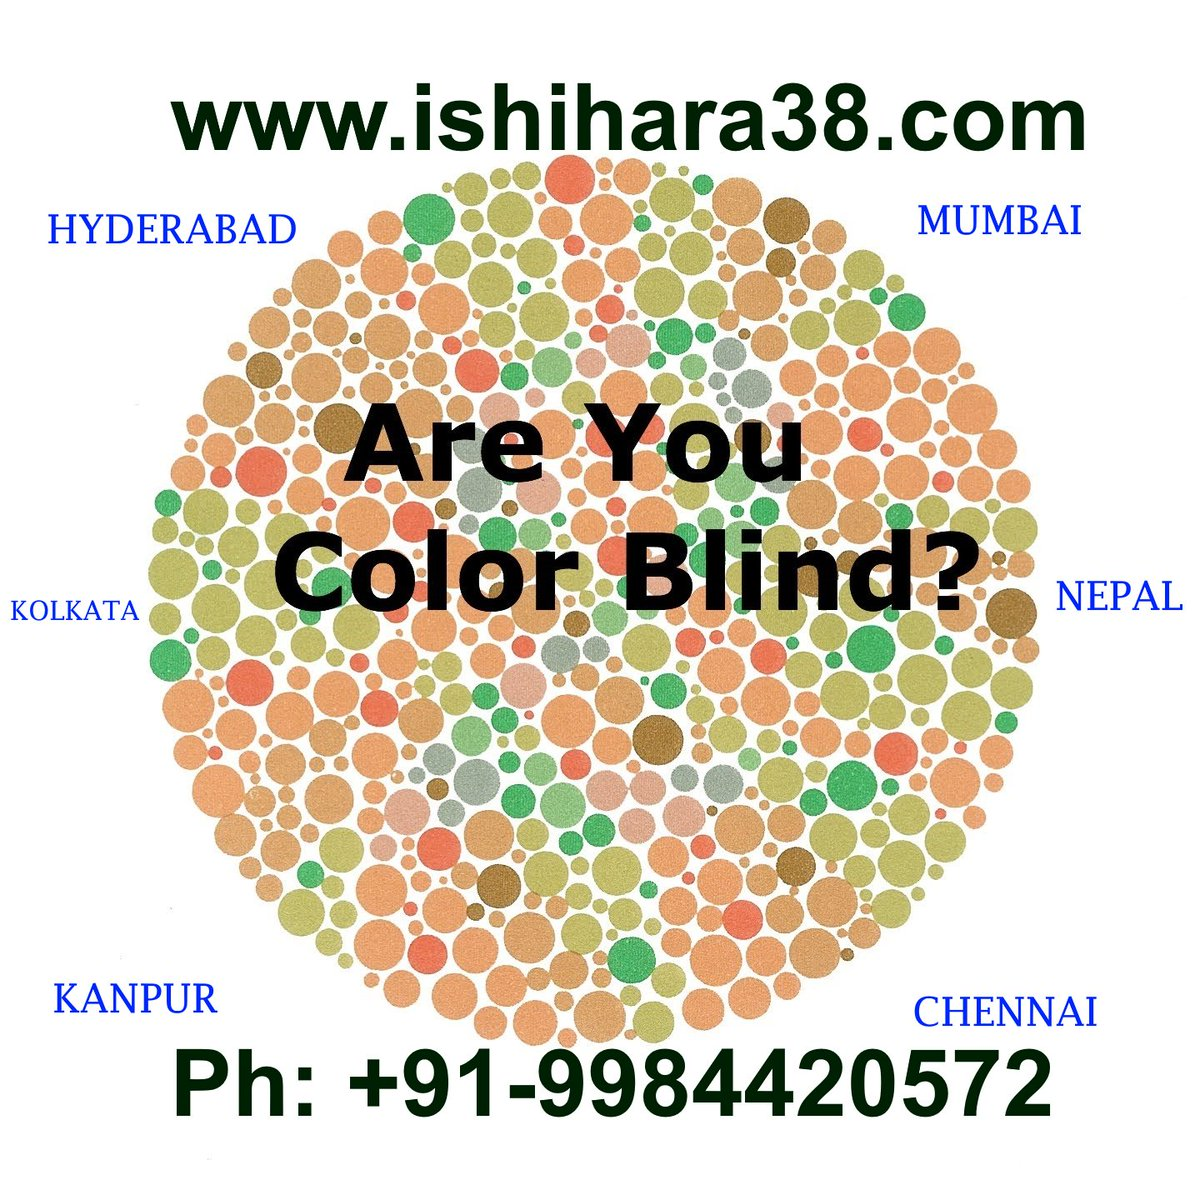 Cure Color Blindness On Twitter कलर ब ल इ ड क